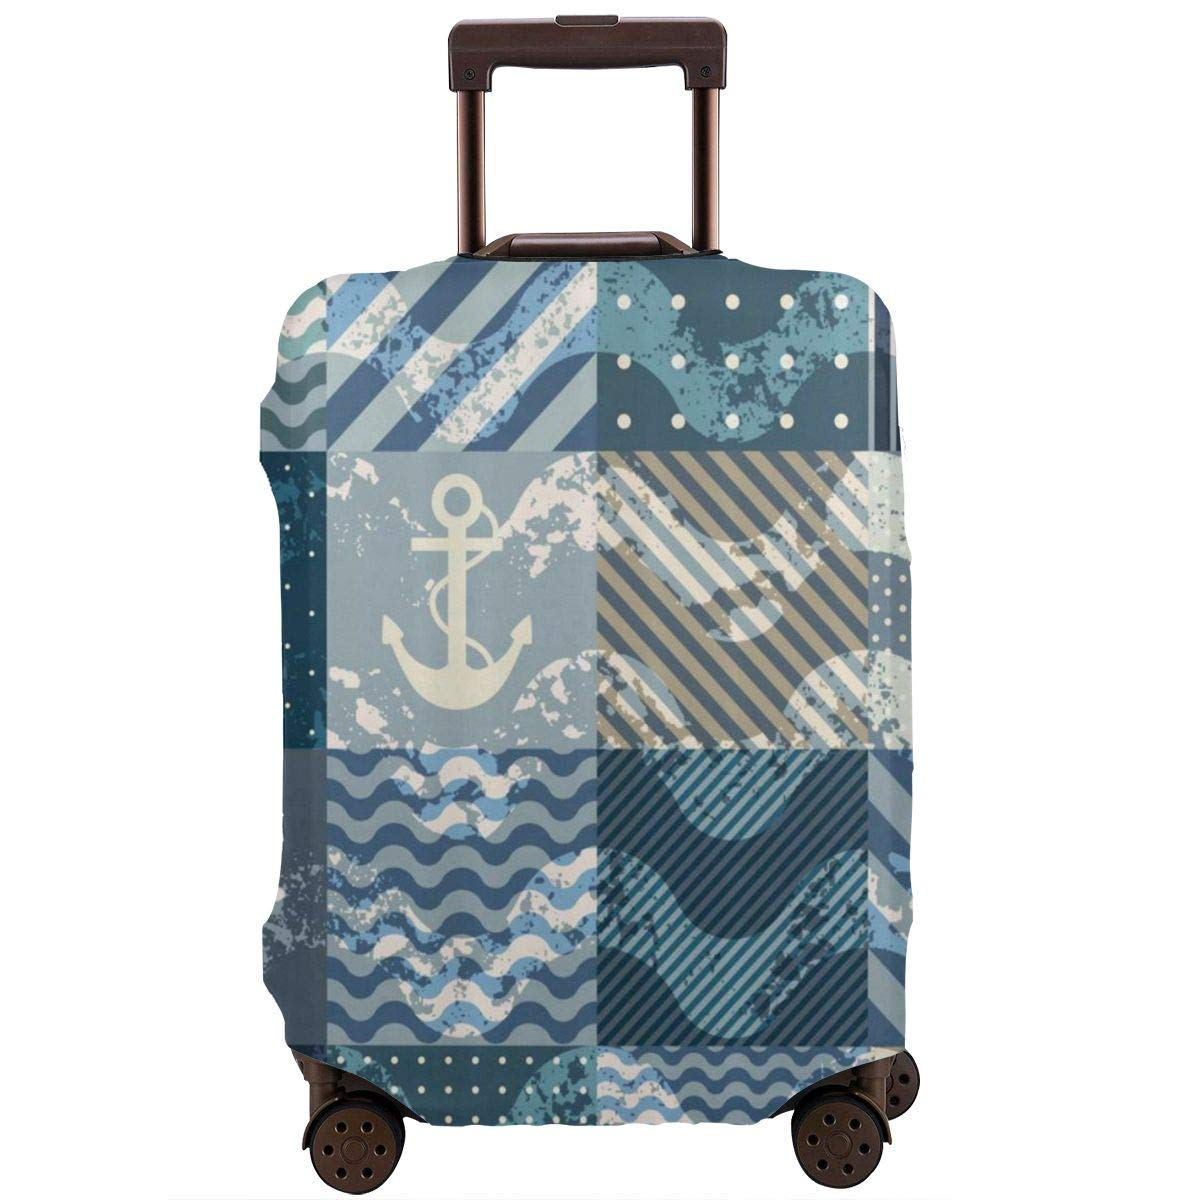 Luggage Cover Nautical Marine Wave Squares Anchor Protective Travel Trunk Case Elastic Luggage Suitcase Protector Cover